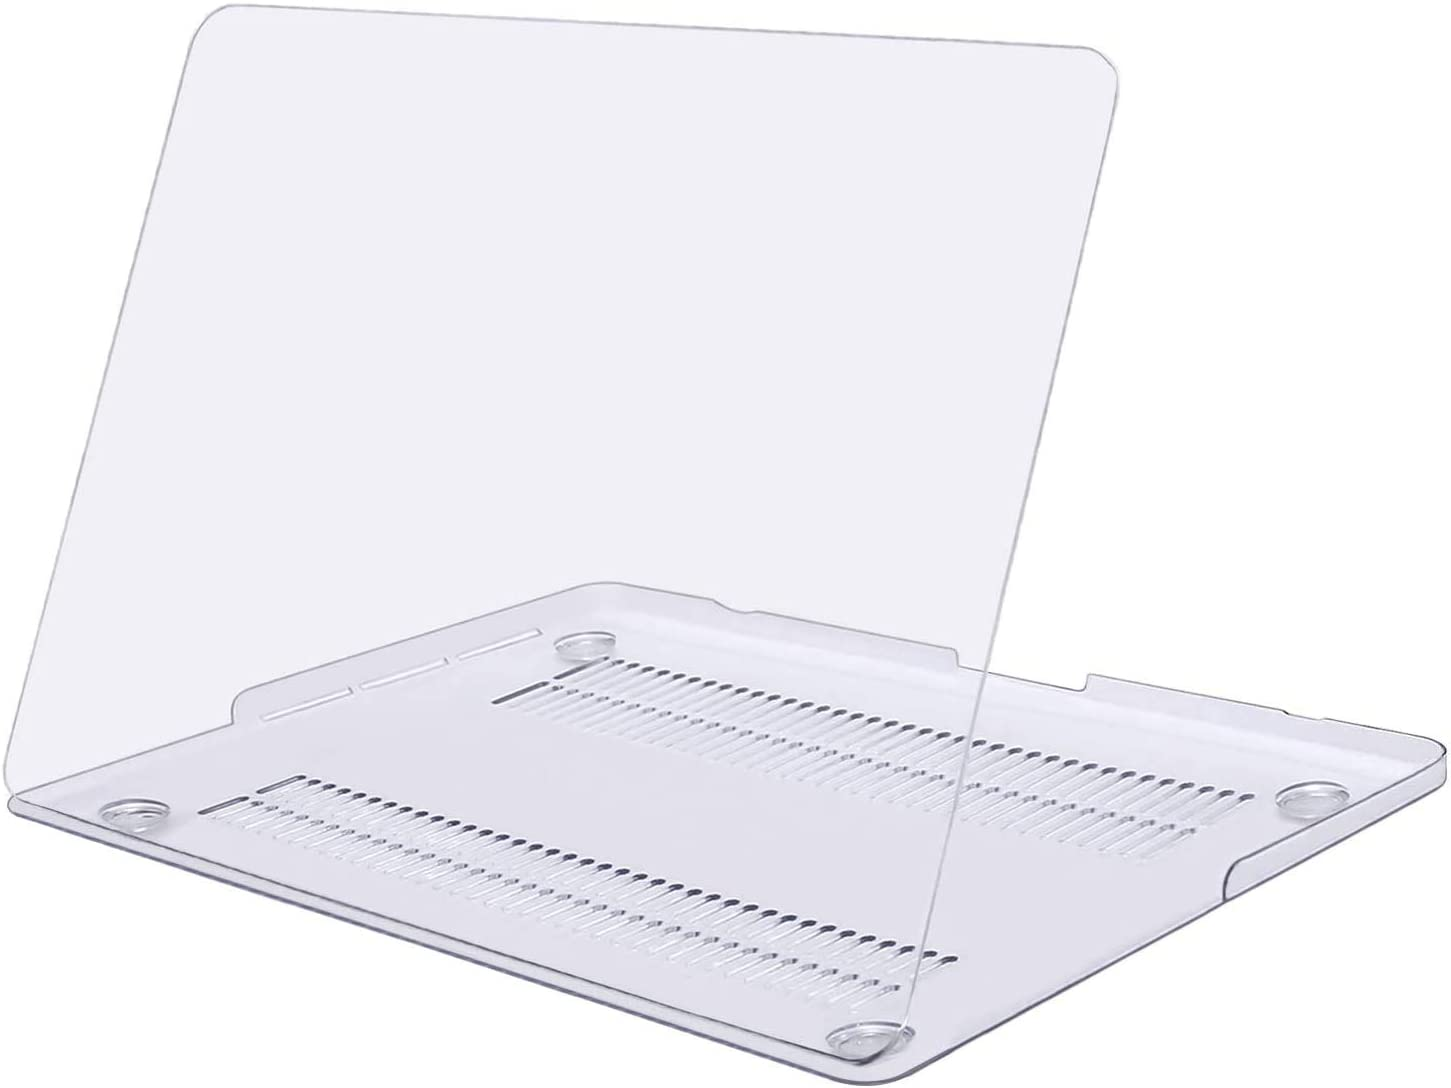 MOSISO Case Only Compatible with Older Version MacBook Pro Retina 15 inch (Model: A1398) (Release 2015 - end 2012), Plastic Hard Shell Case Cover, Crystal Clear